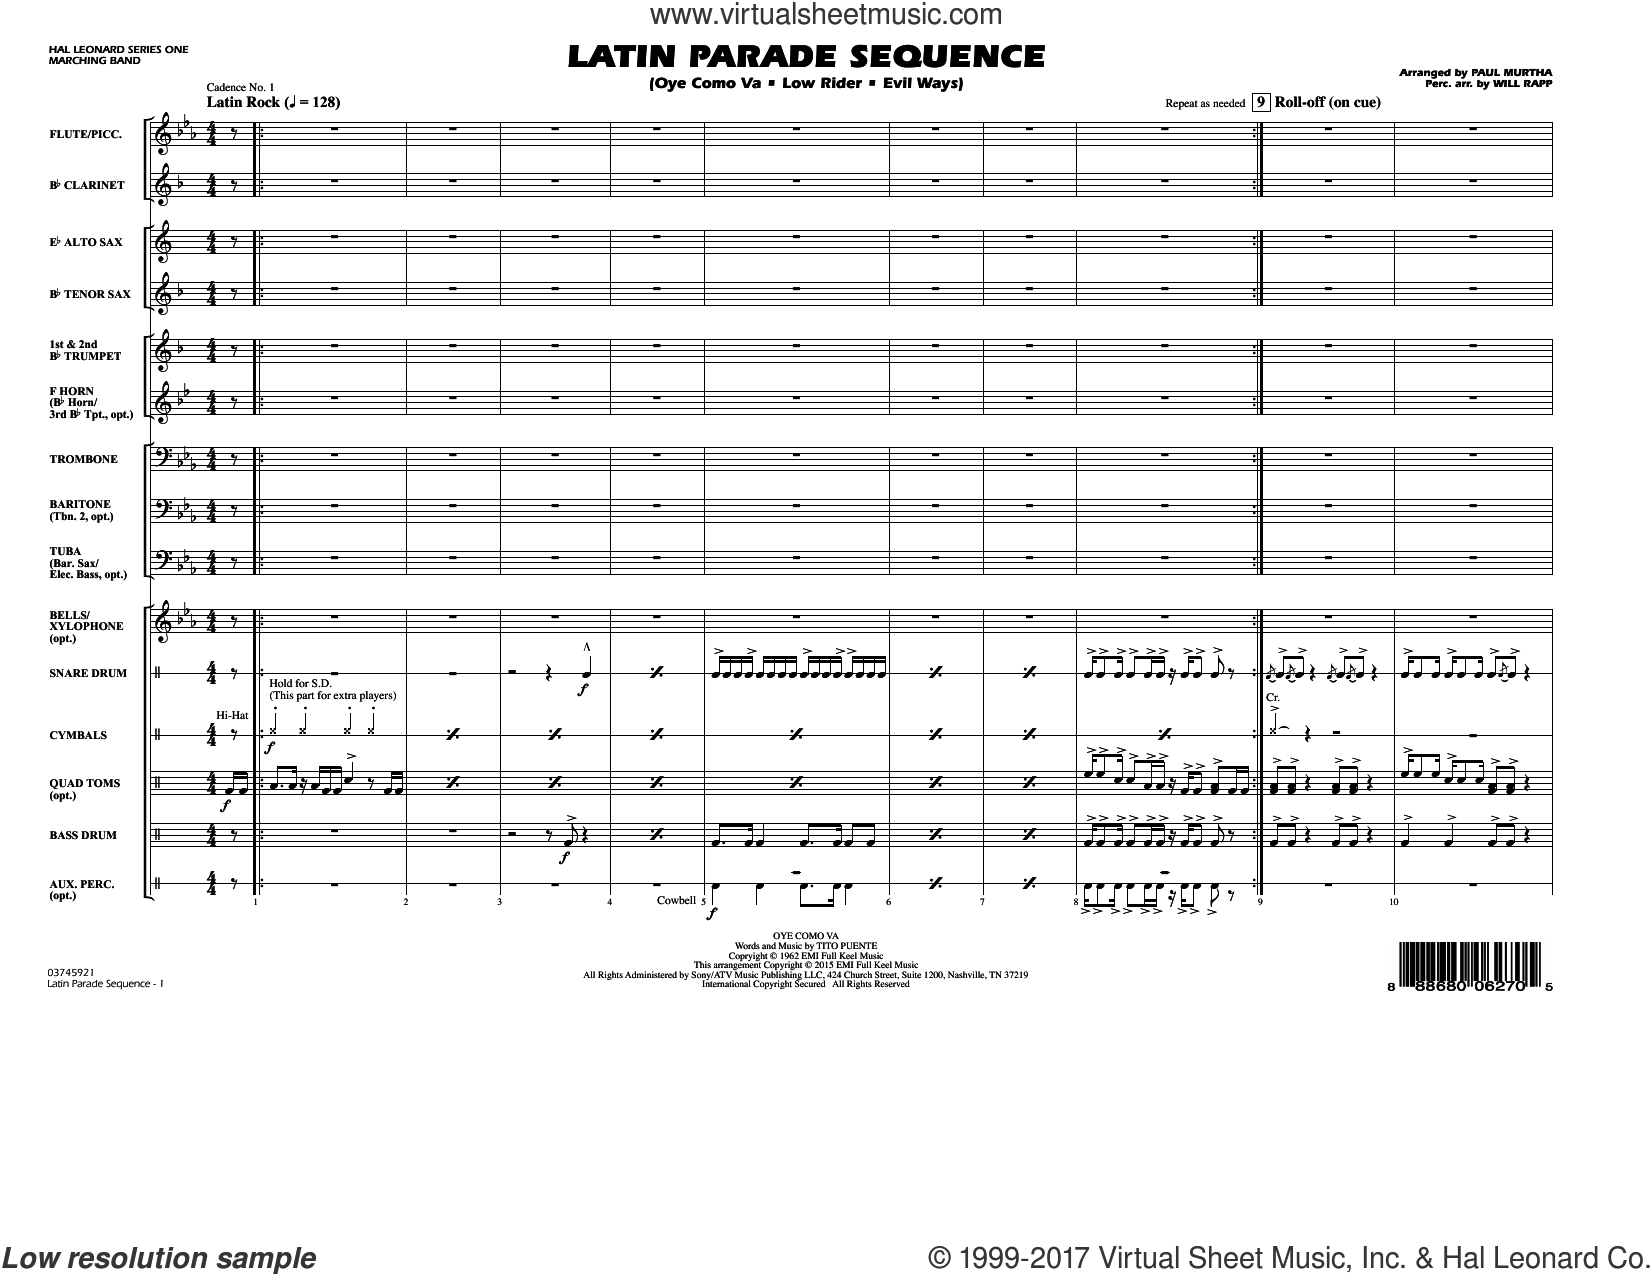 Latin Parade Sequence (COMPLETE) sheet music for marching band by Paul Murtha, intermediate skill level